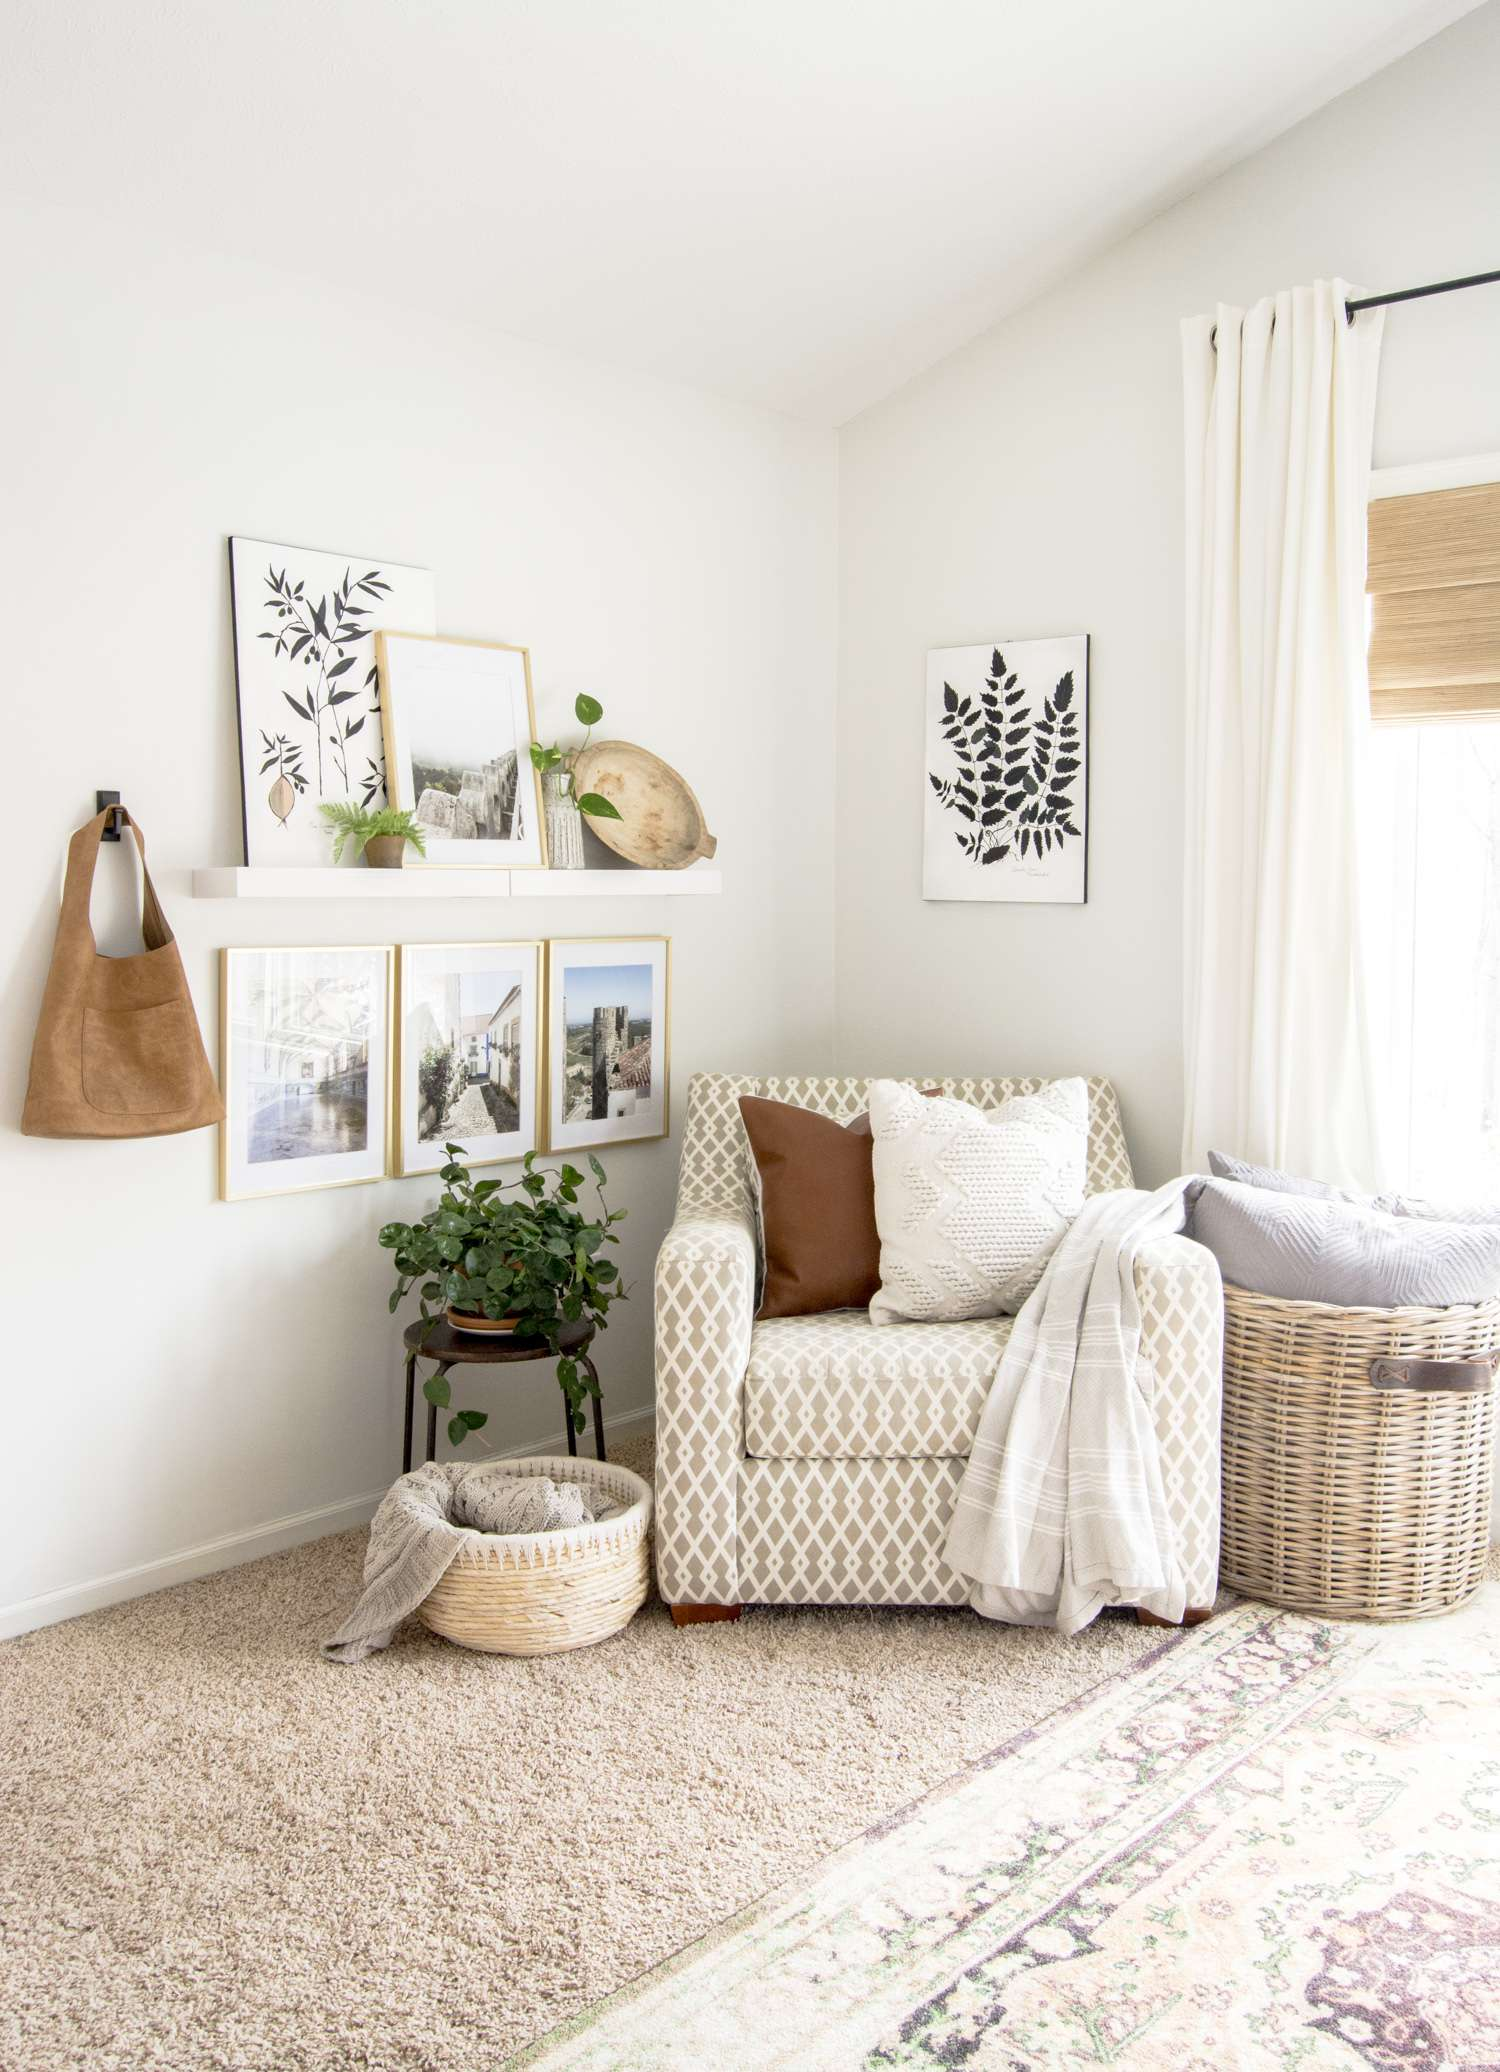 Master bedroom cozy corner.